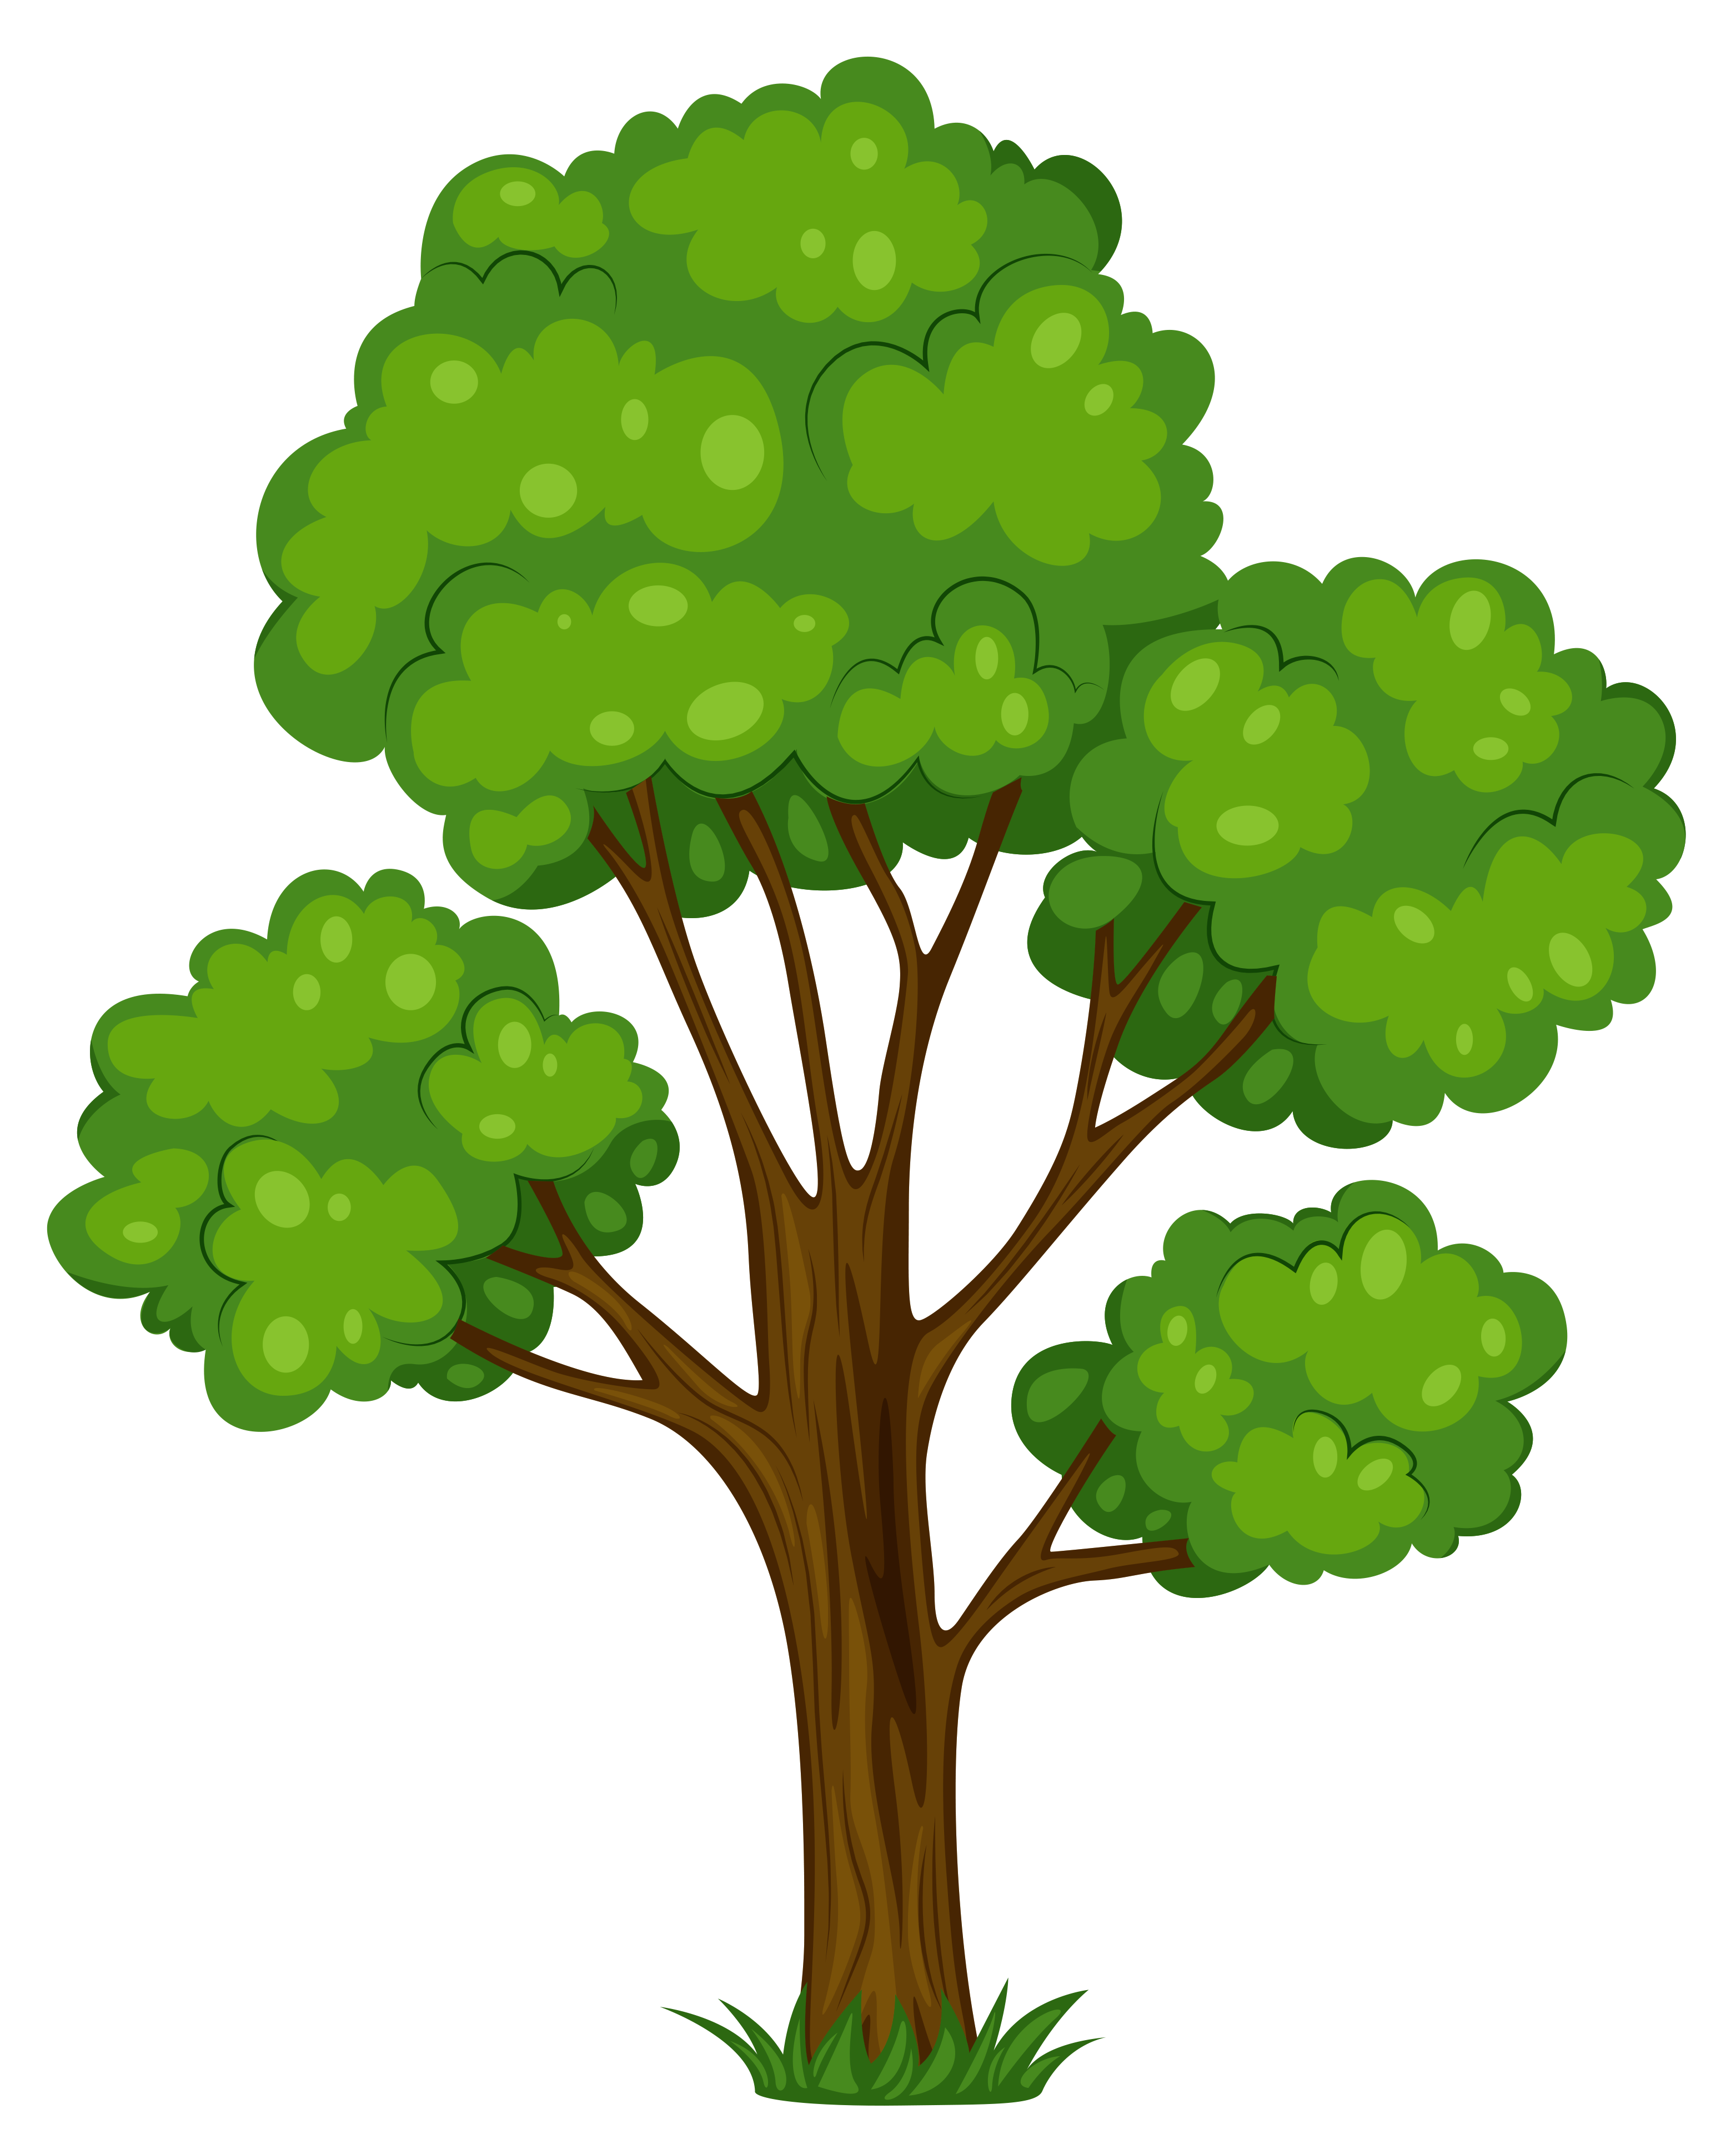 Tree clipart high resolution. Painted green png picture